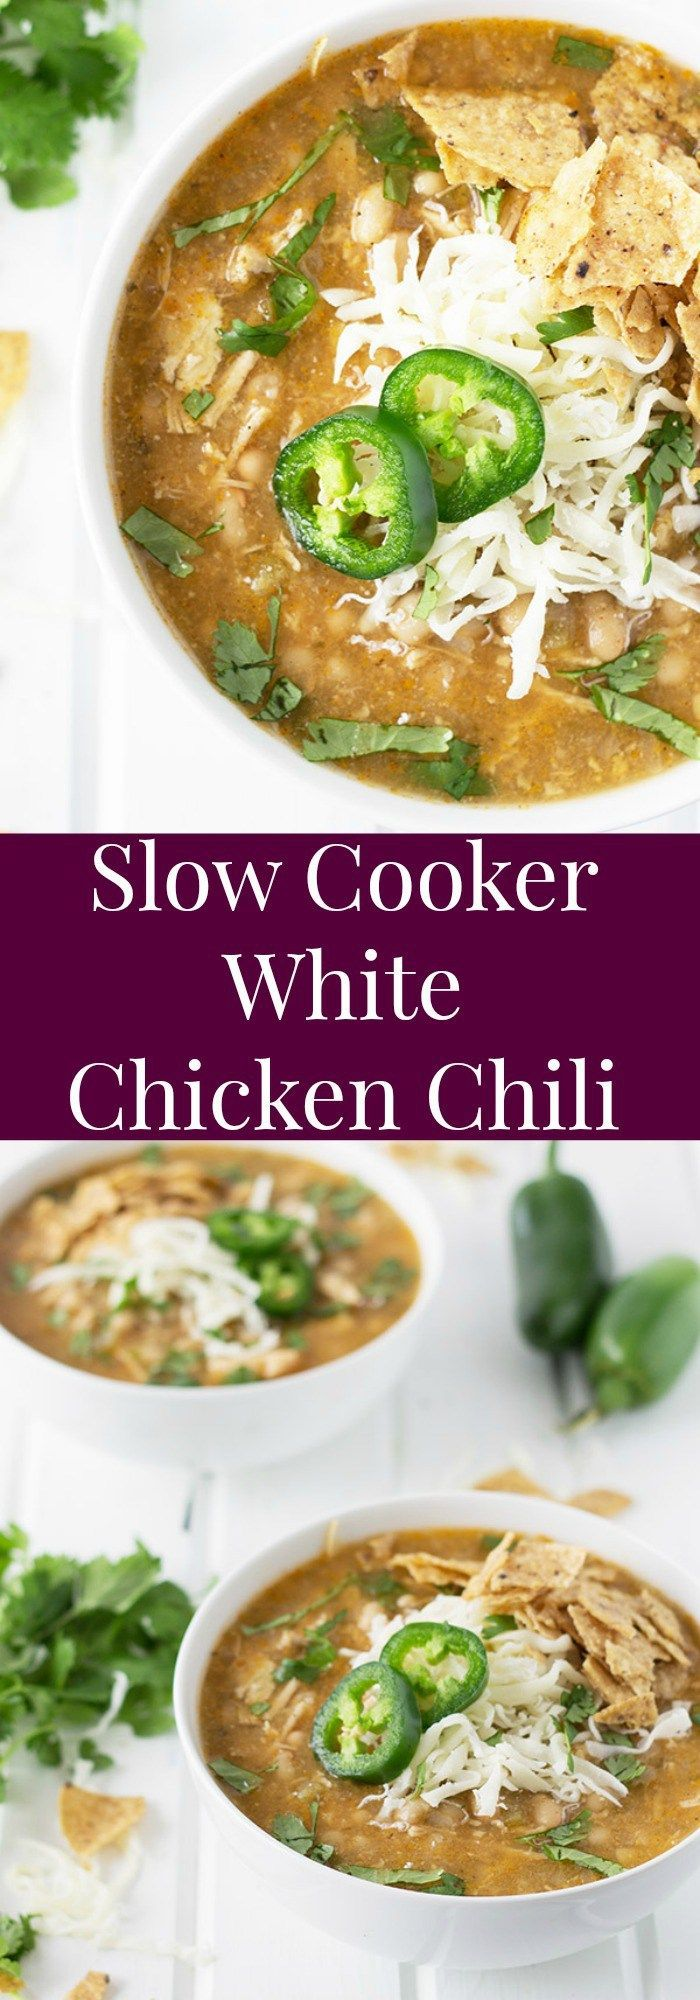 Slow Cooker White Chicken Chili- this comforting soup is so easy to make right in your slow cooker! | Countryside Cravings